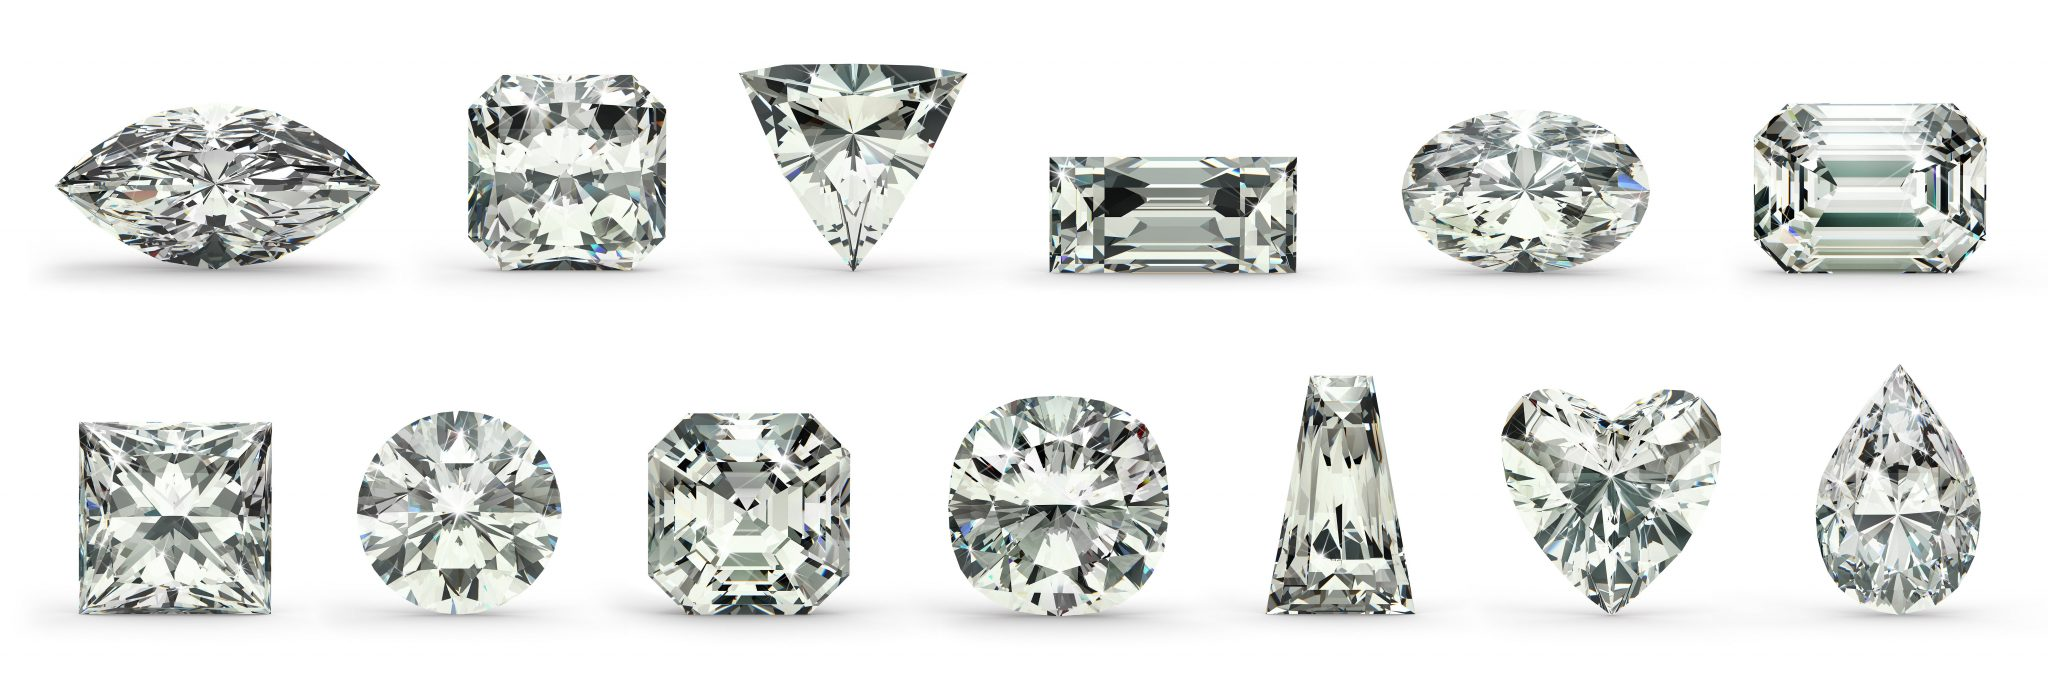 prices buy engagement is to at rings it possible blog and diamond diamonds jewellery wholesale